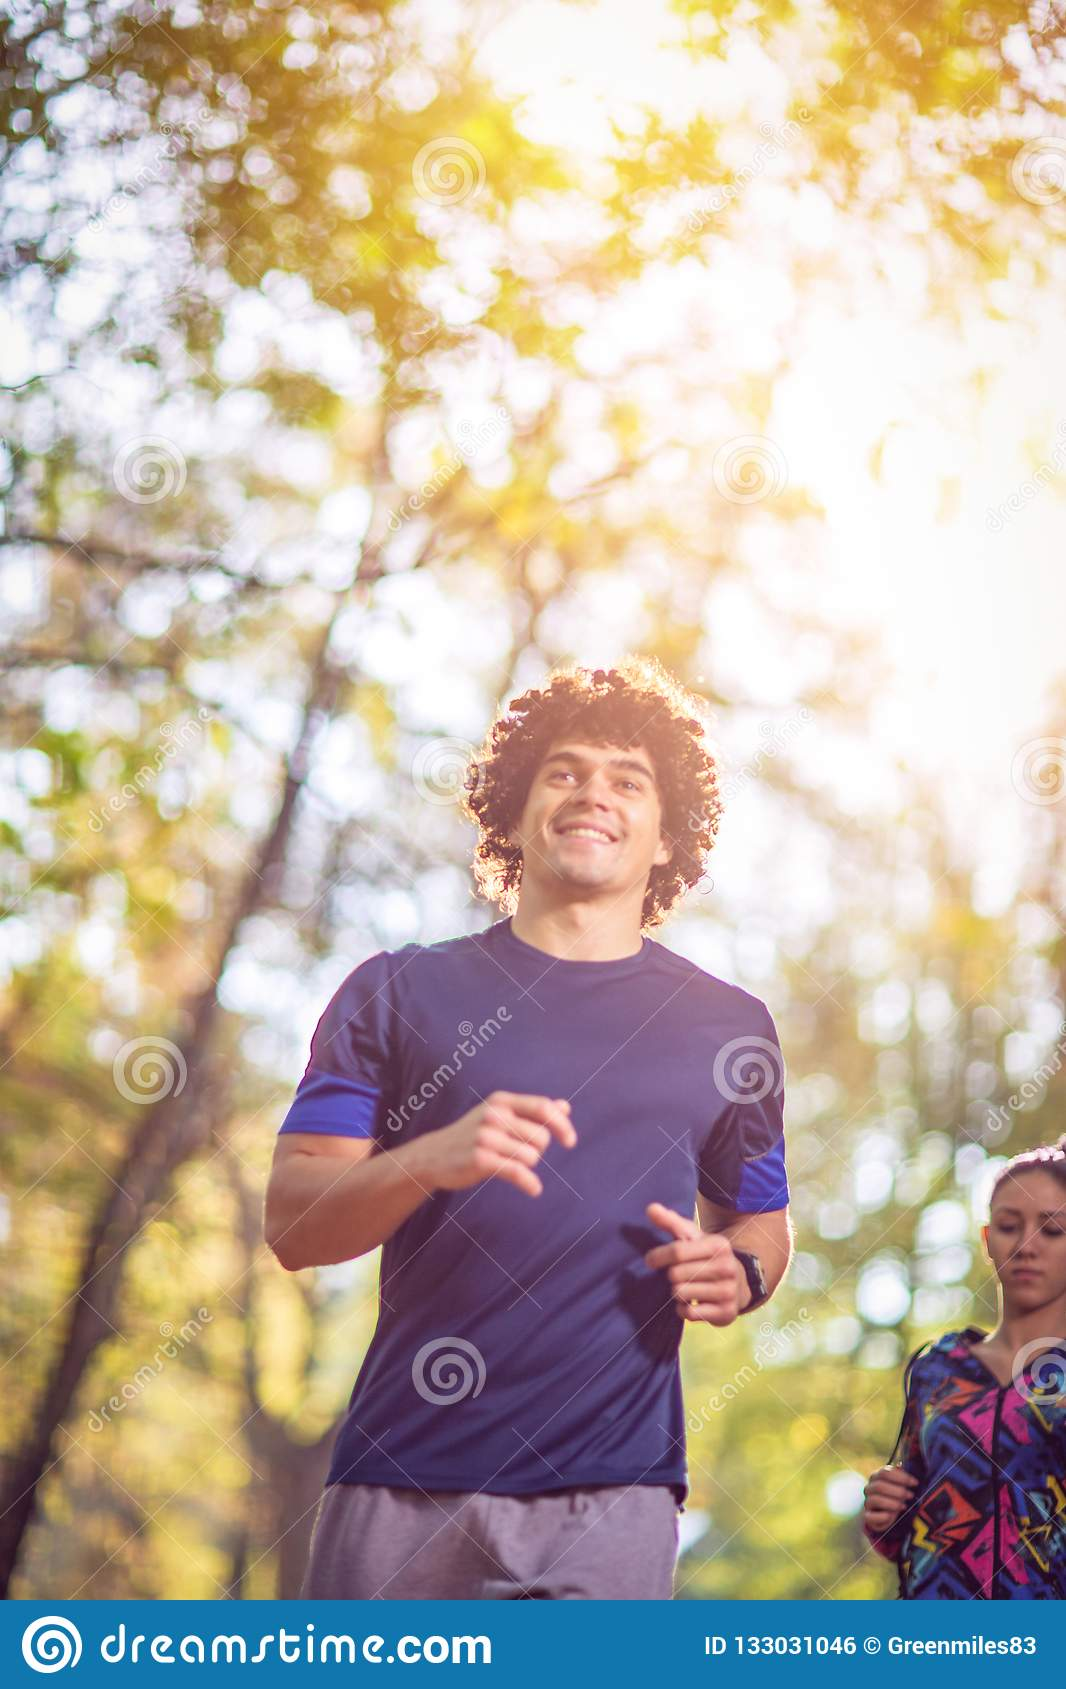 Man running at the nature- fitness, sport, training and lifestyle concept.